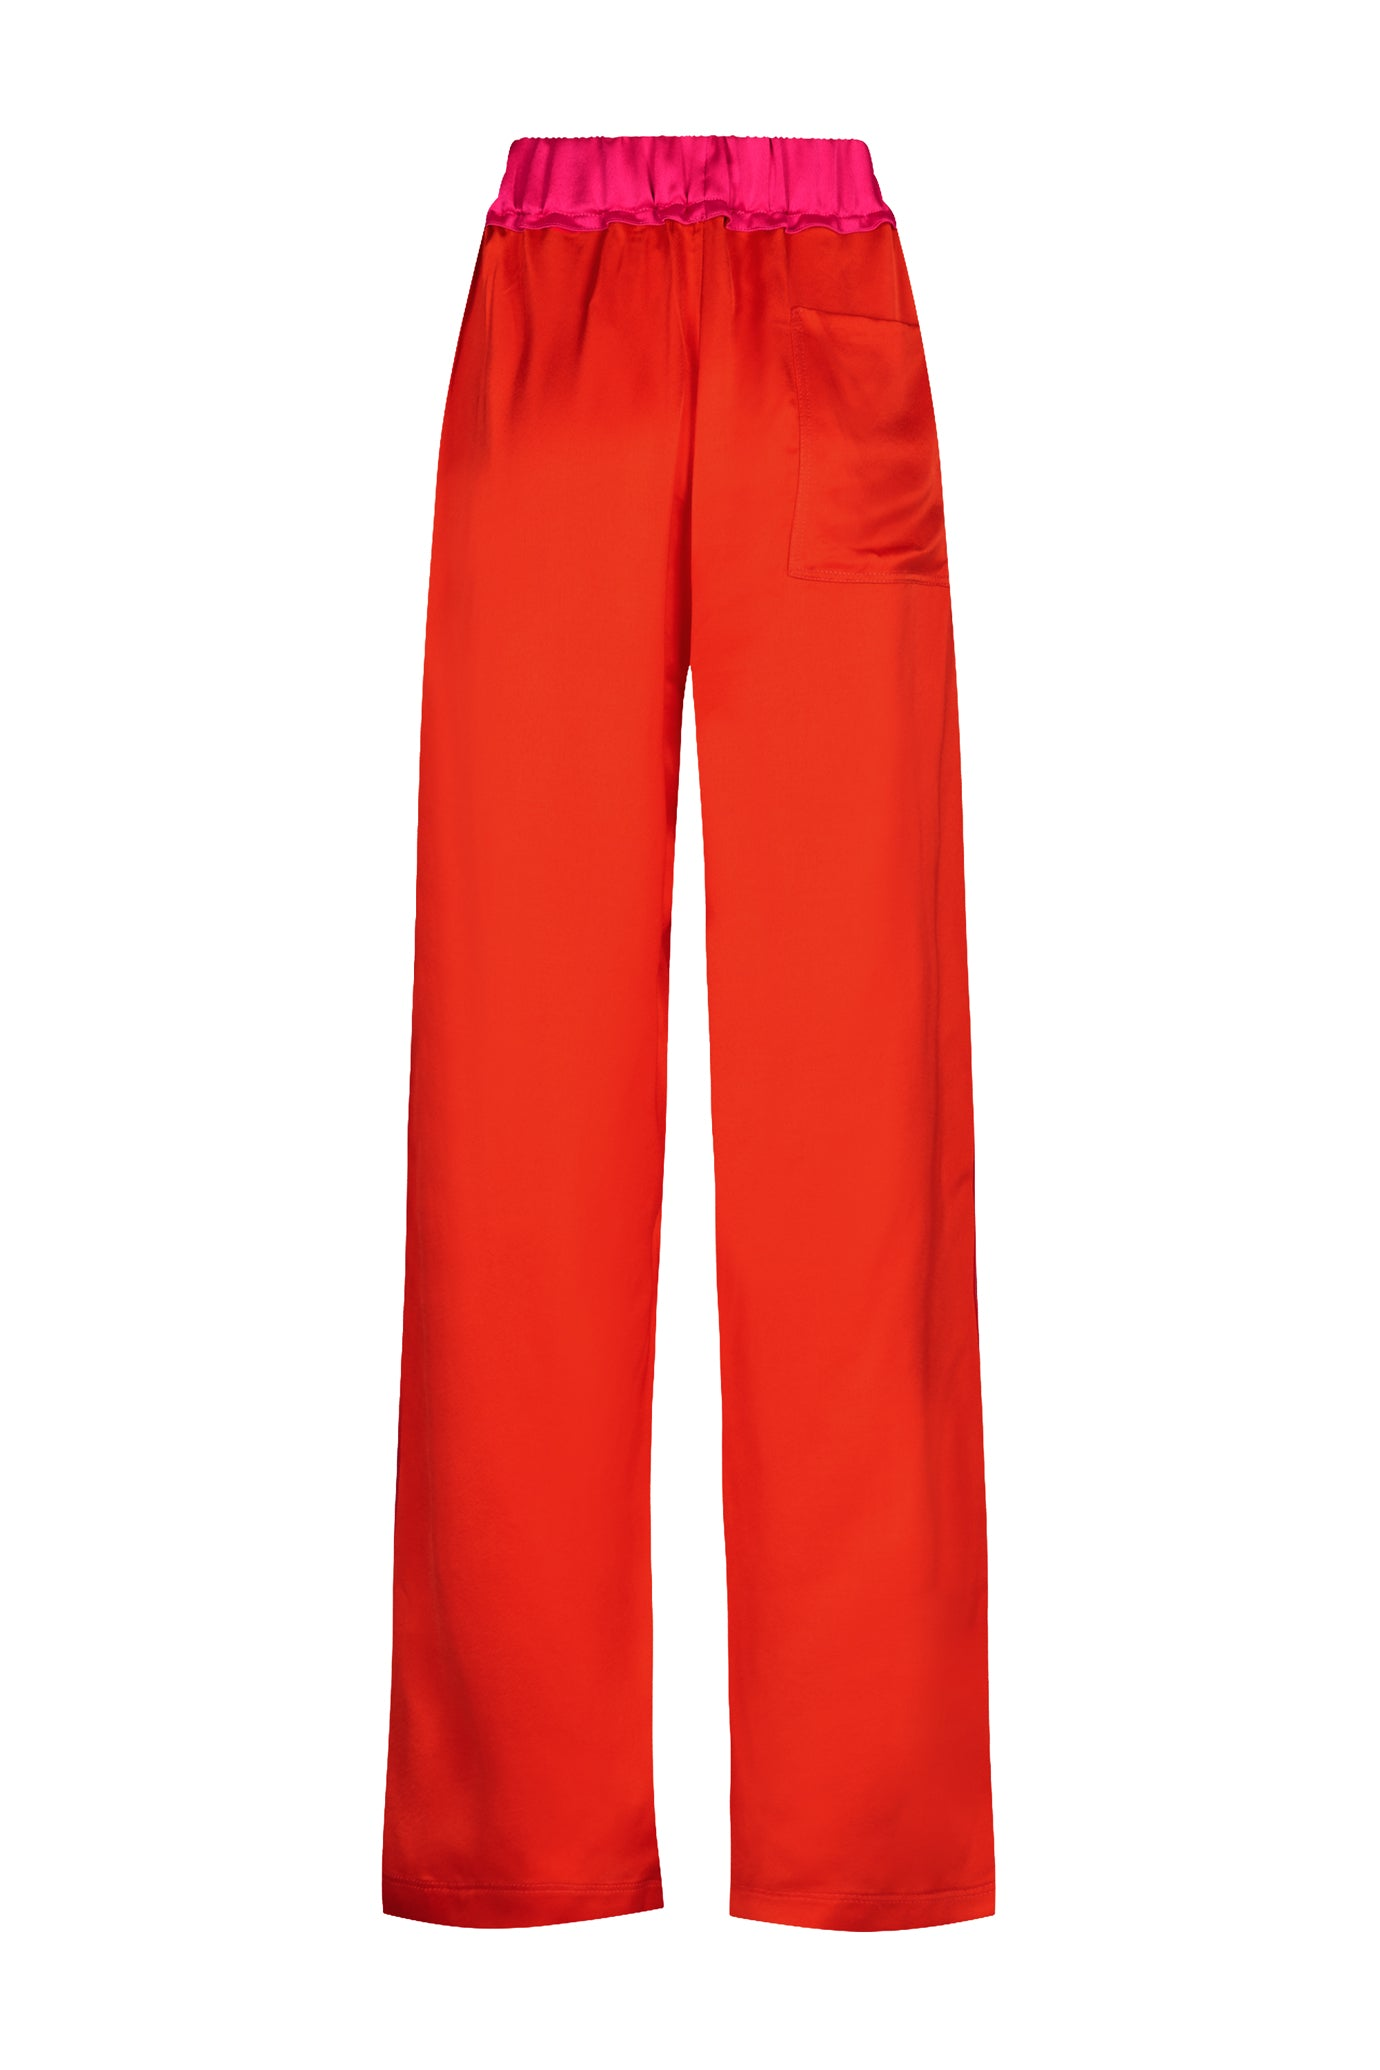 The Classic Wide Leg Jogger - Red & Hot Pink Viscose